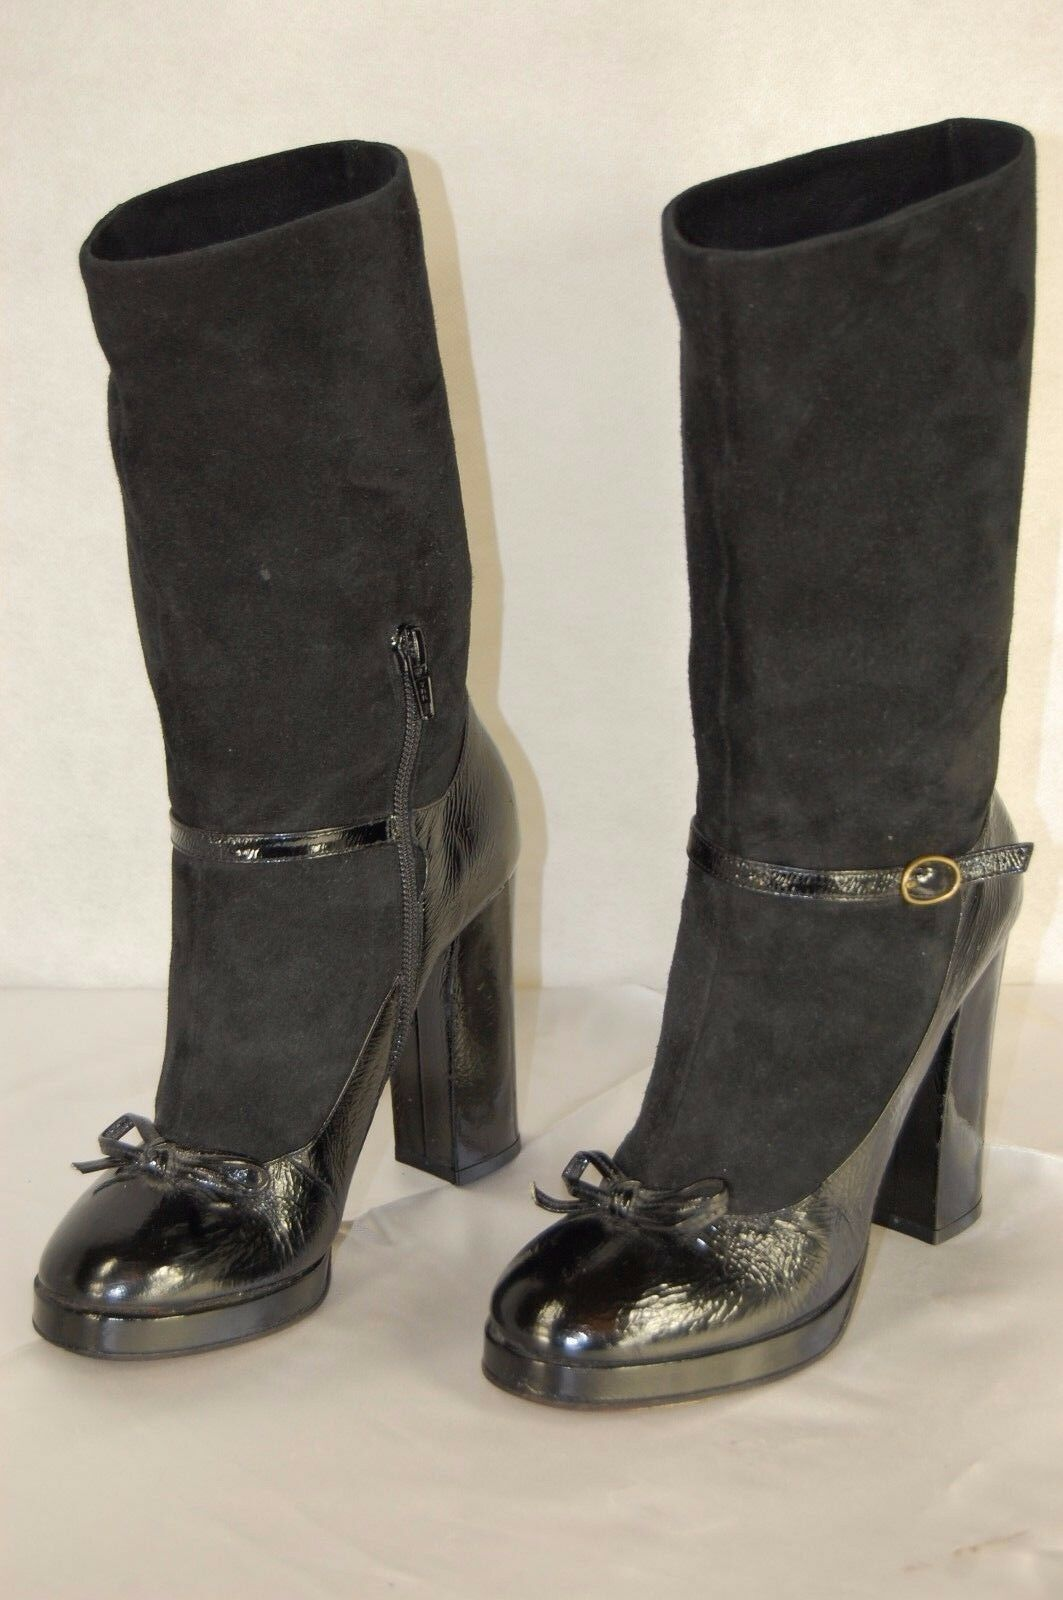 SUPER SEXY MARC JACOBS MADE IN ITALY BLACK HI HEEL BOW ANKLE BOOTS US 6